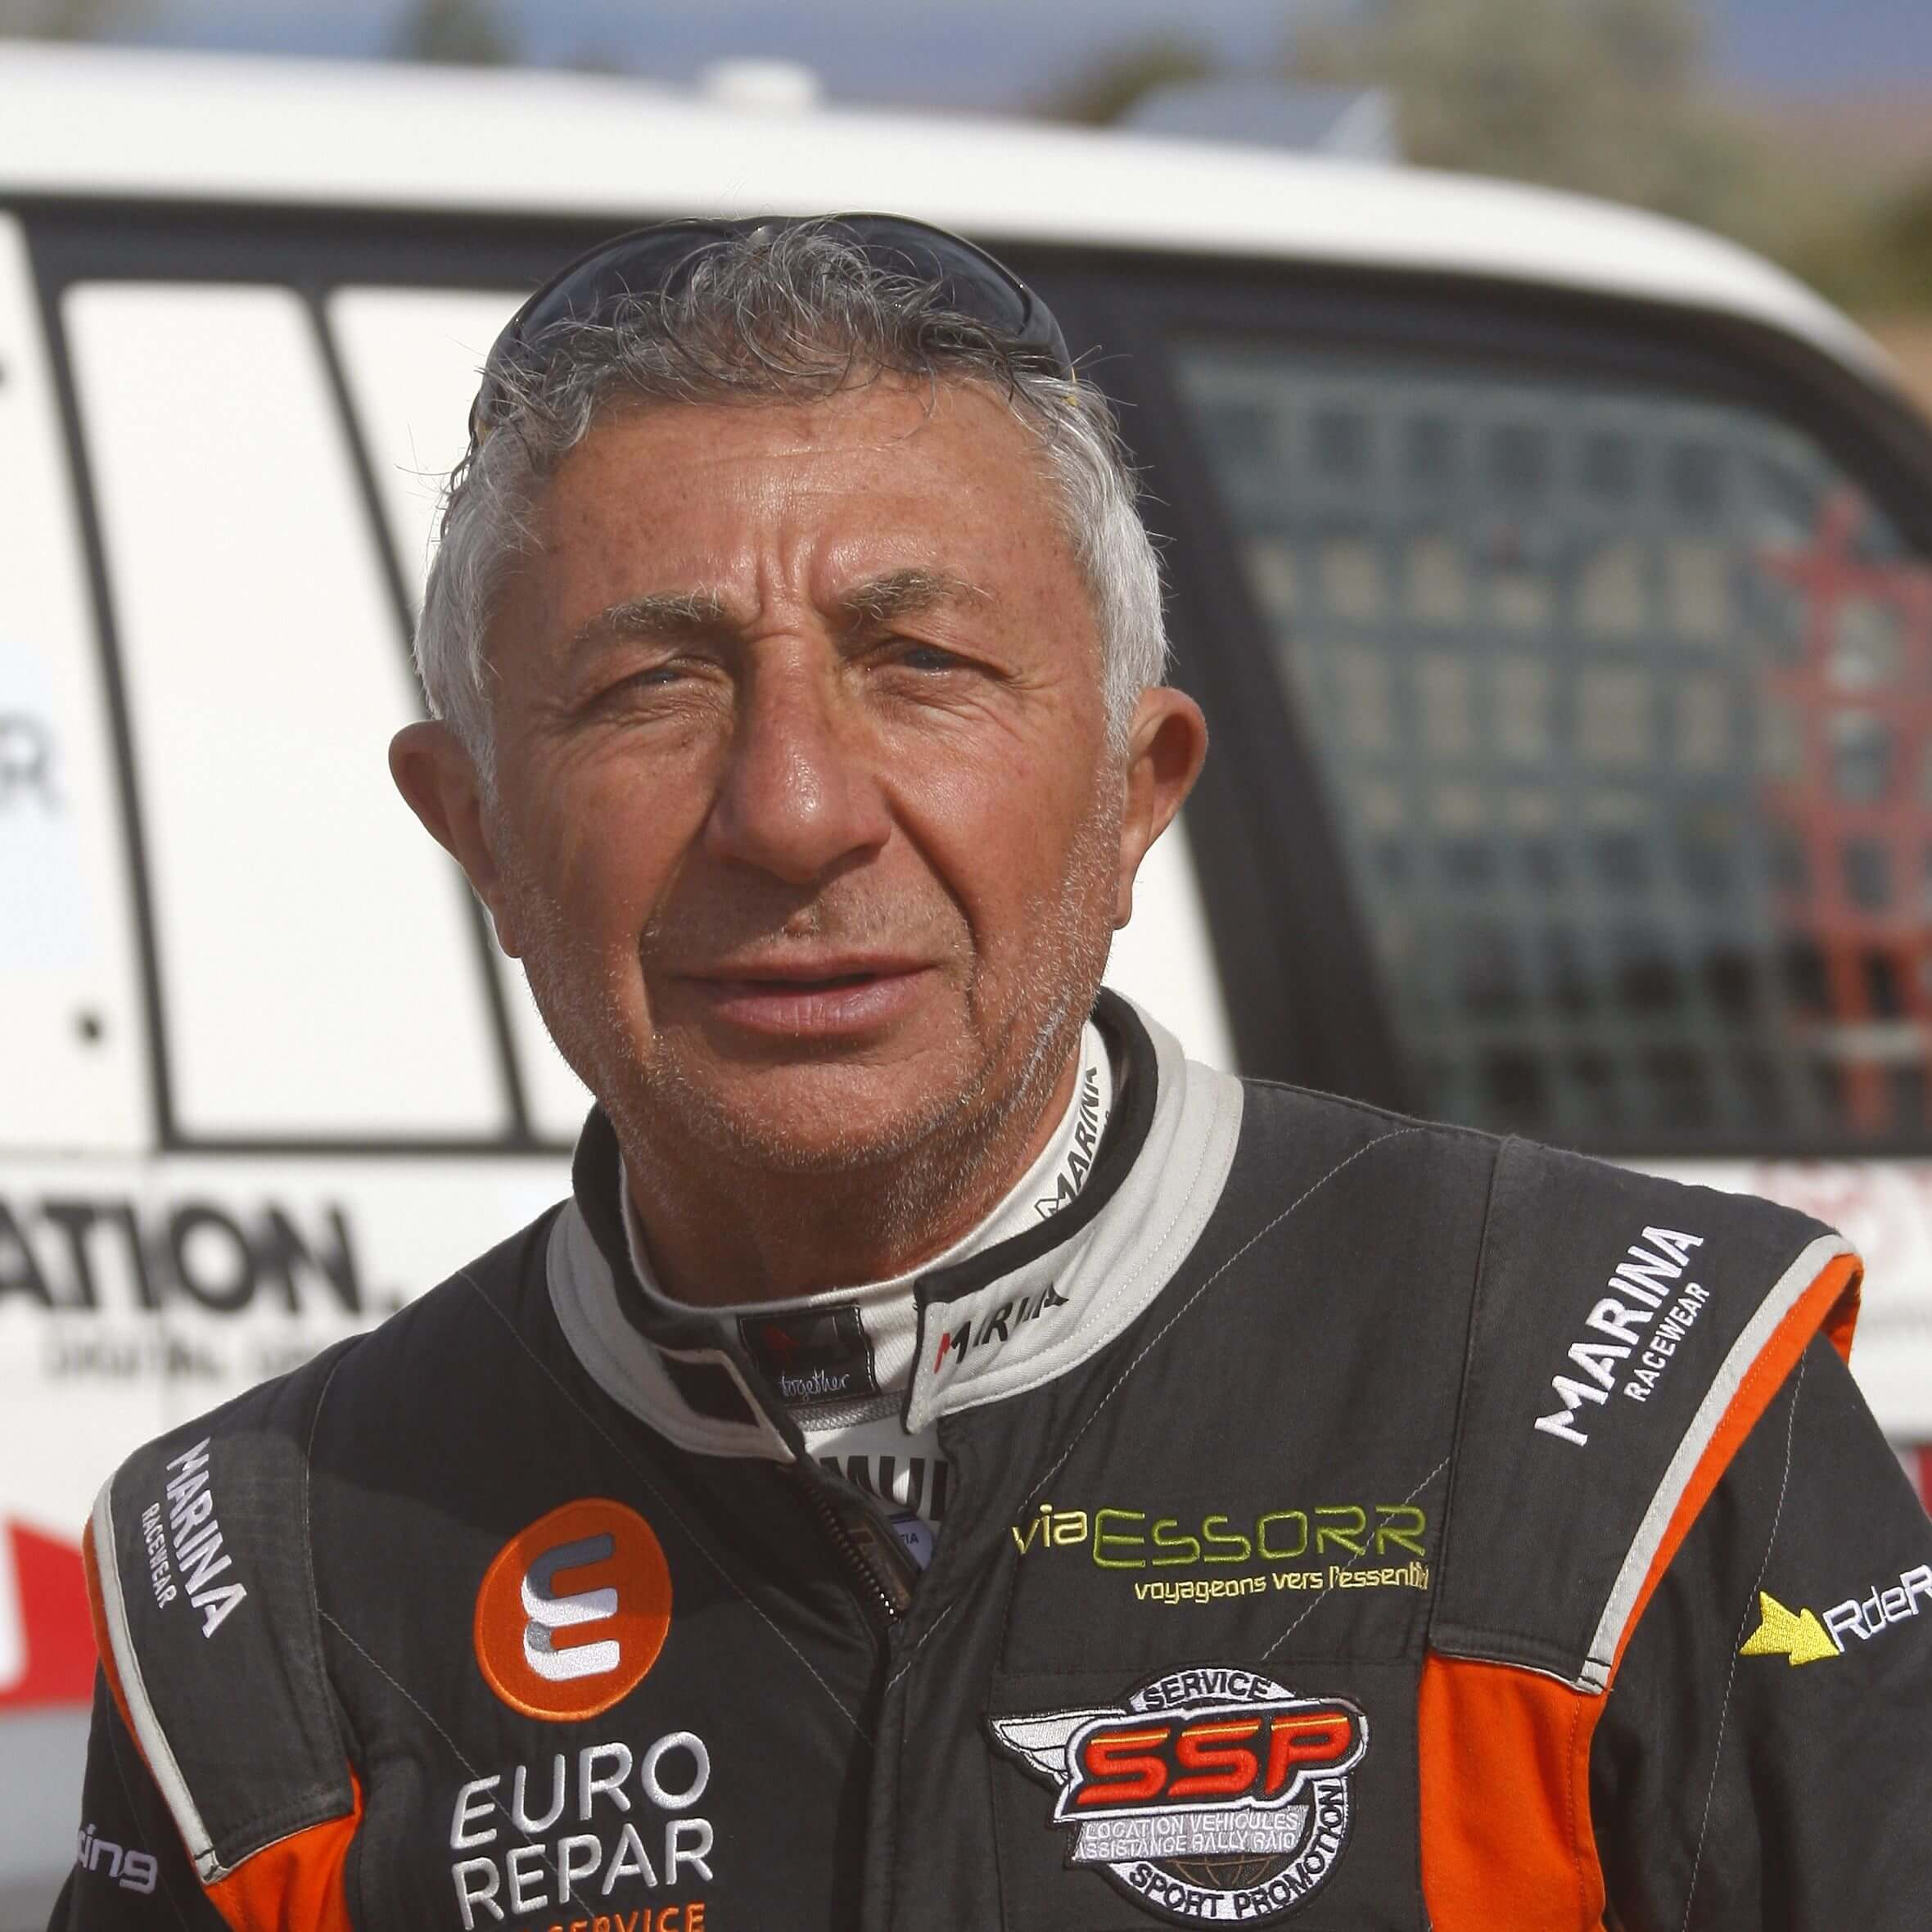 Etienne Smulevici